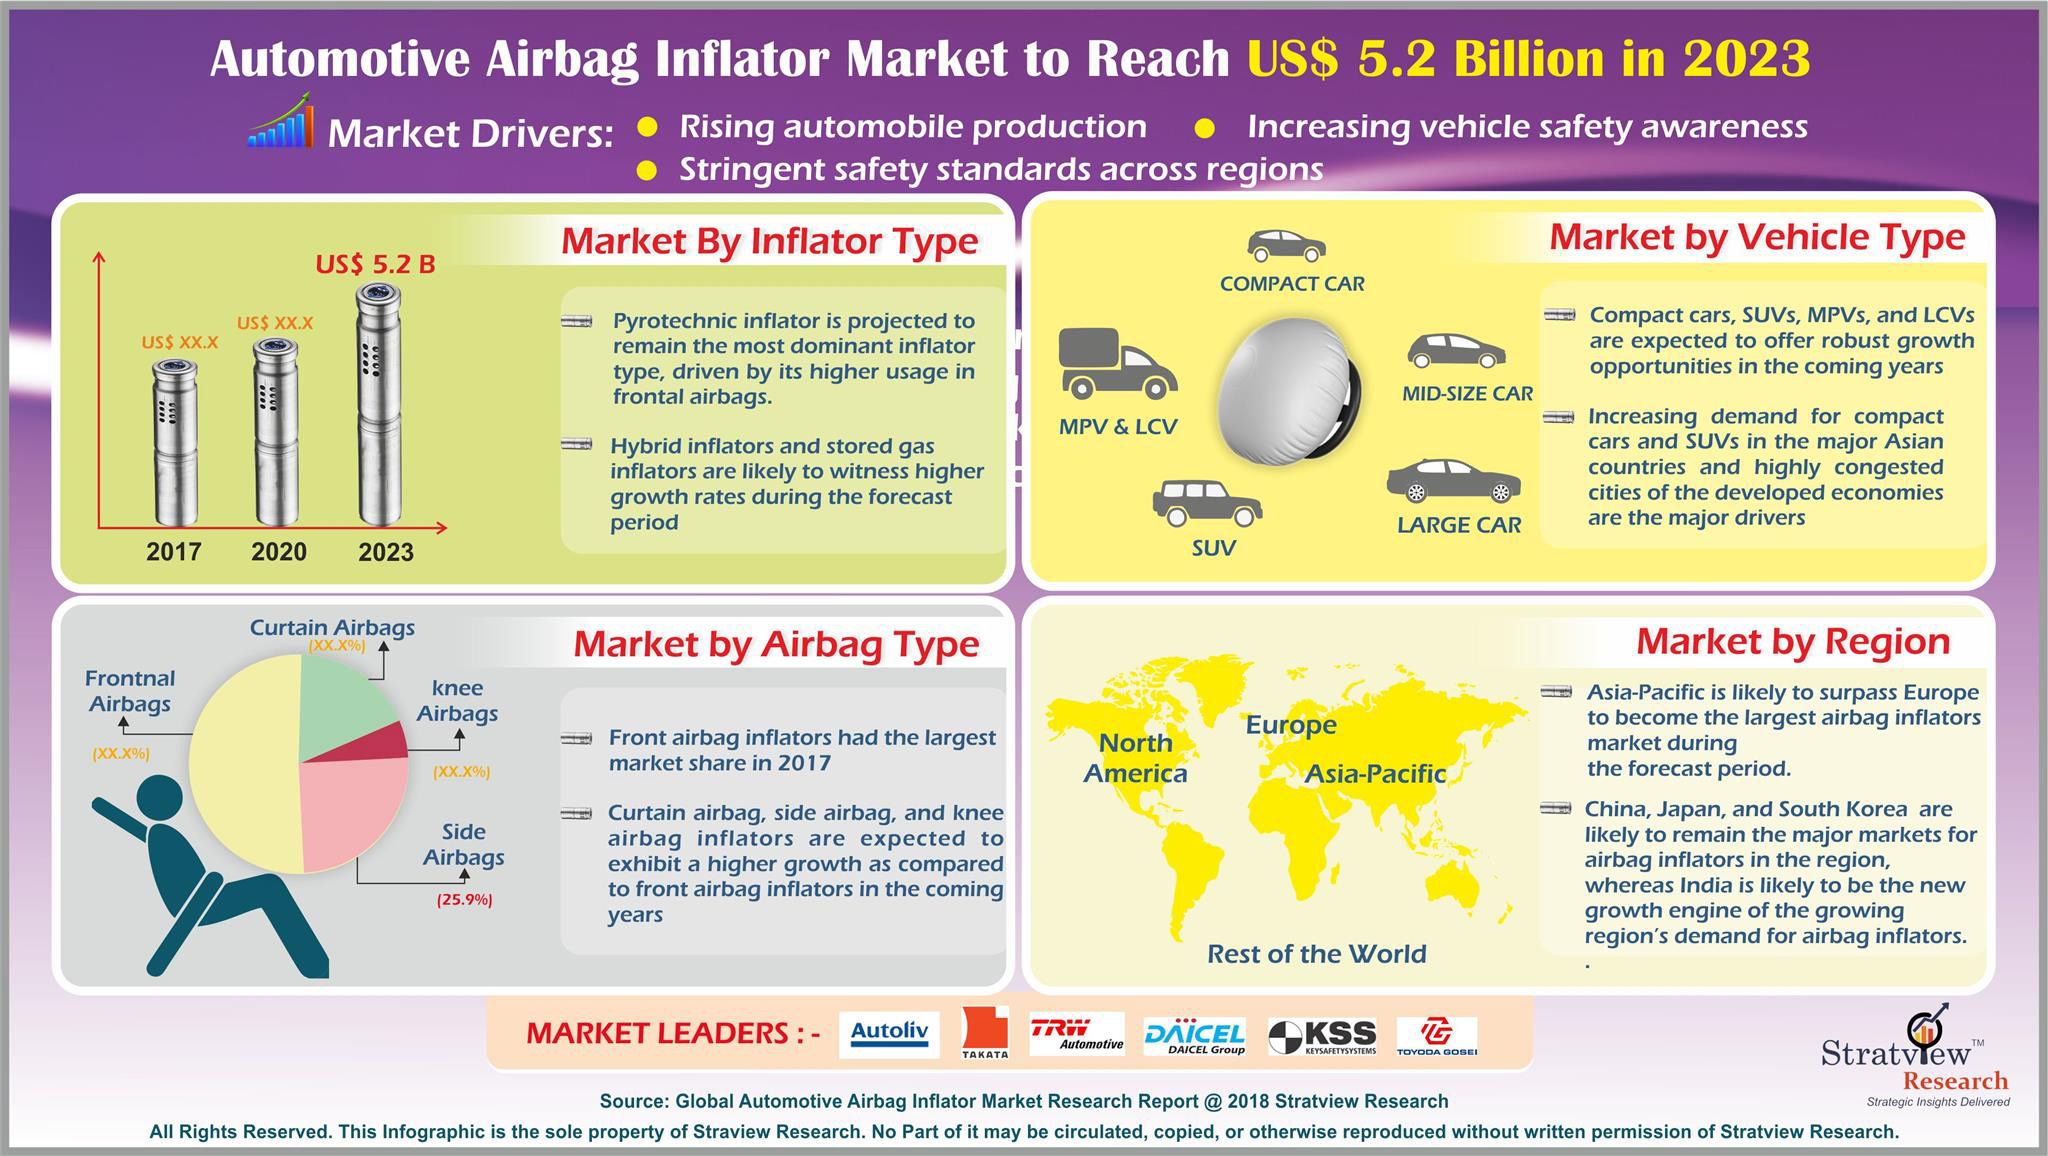 Automotive Airbag Inflators Market